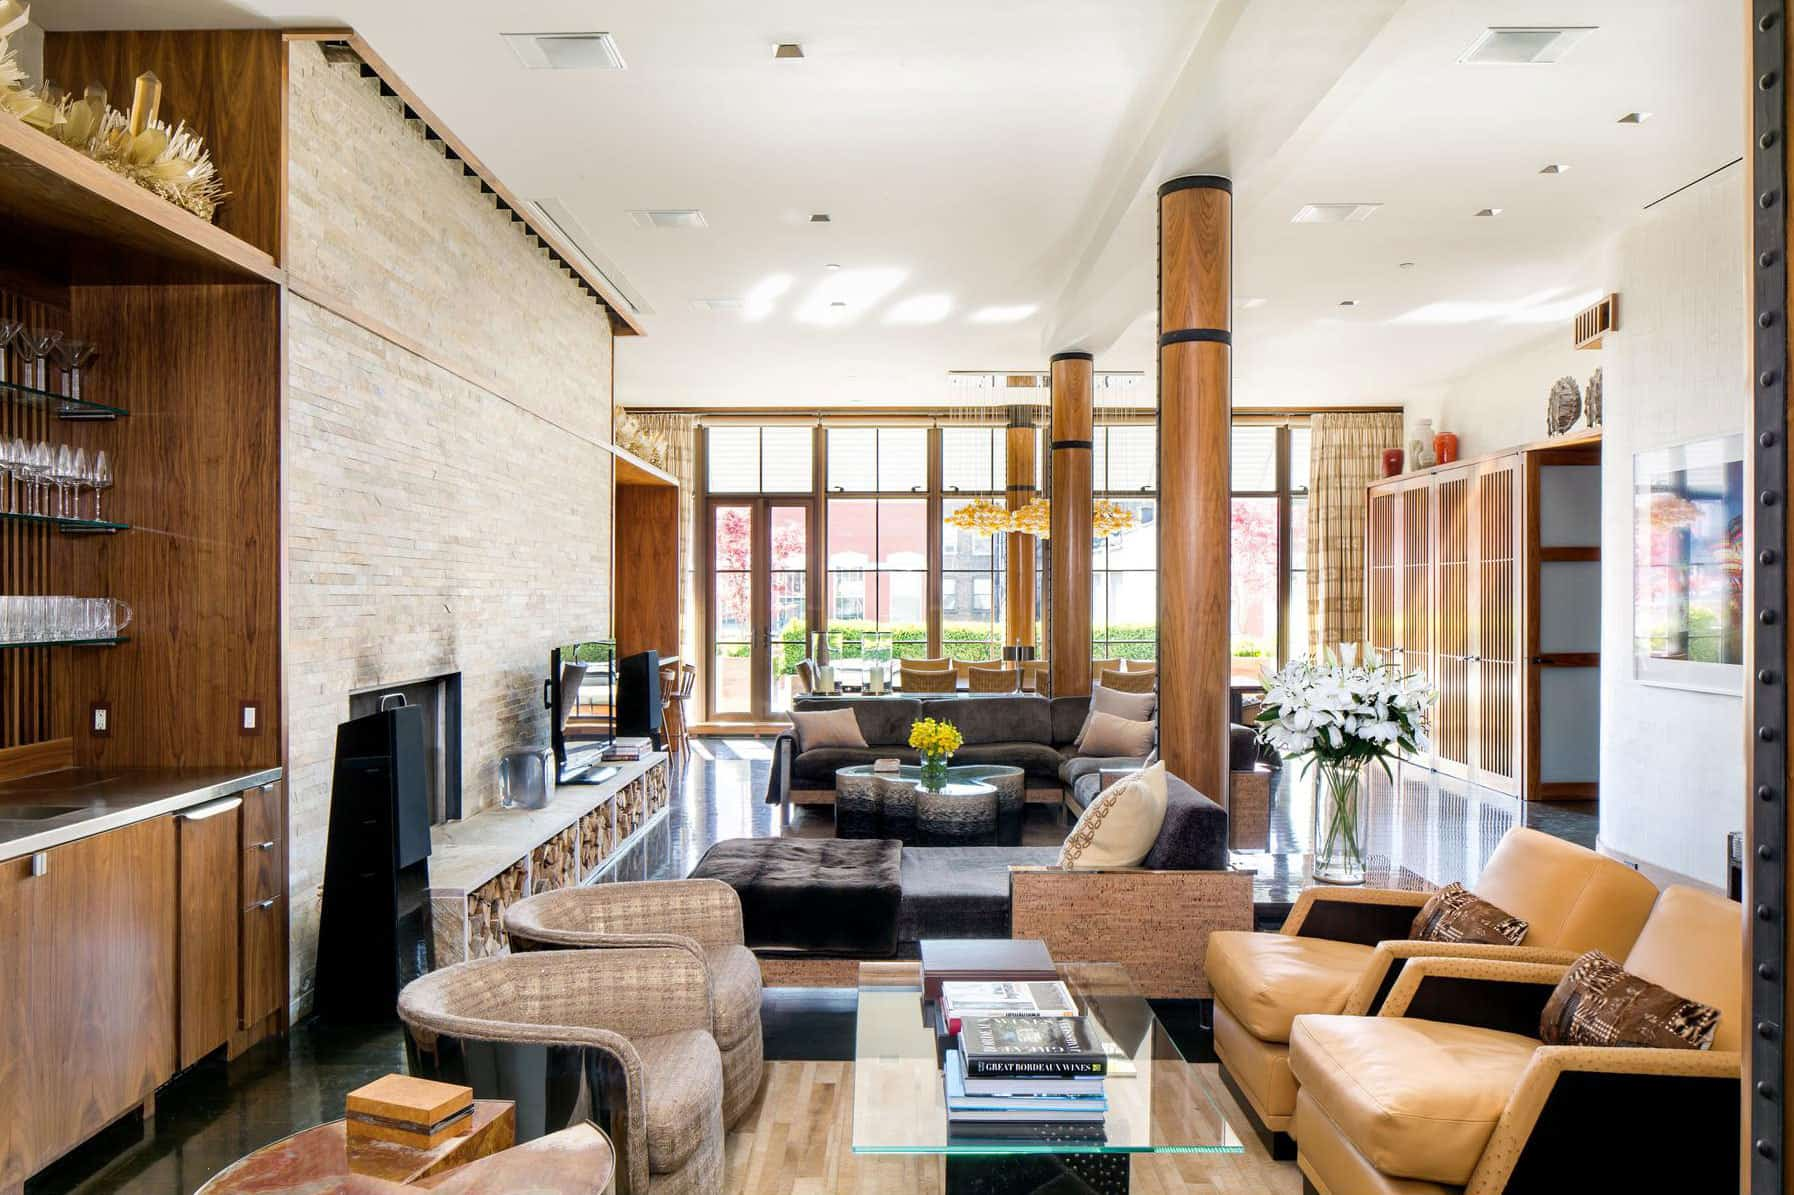 Penthouse B is a Magnificent Apartment in SoHo, New York